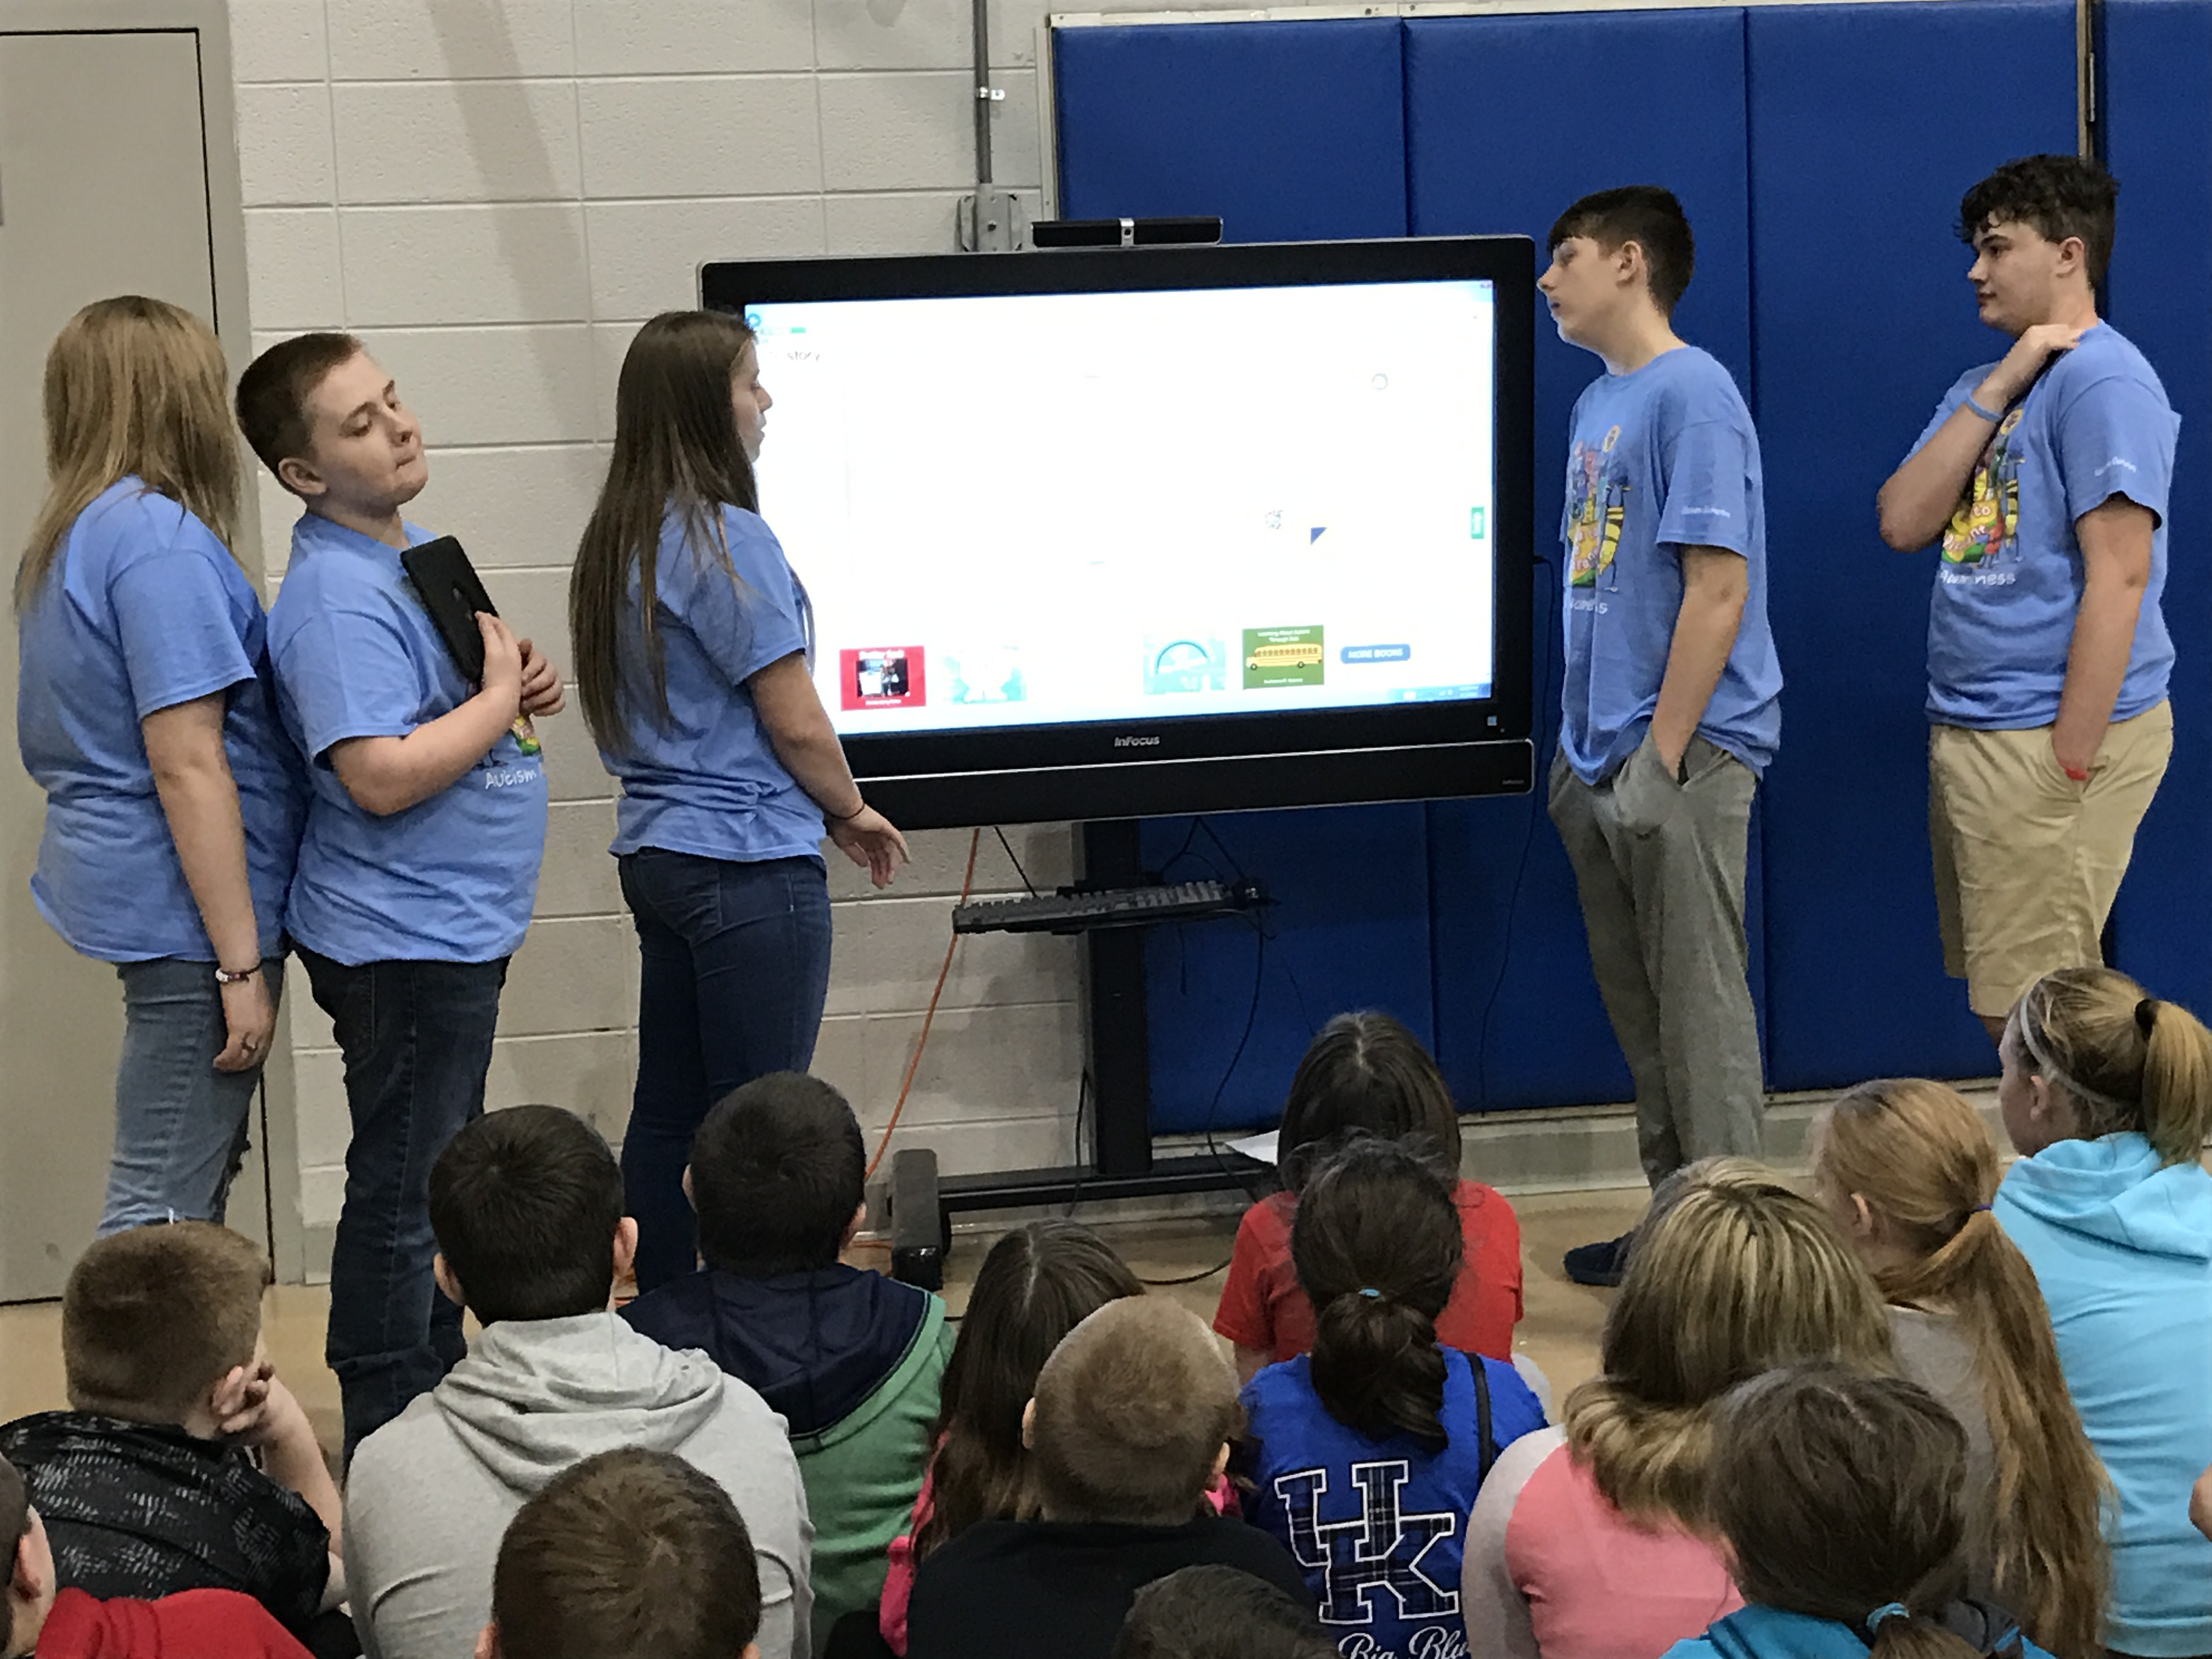 The STLP team is presenting Kelby's book to all grades on Autism Awareness Day!